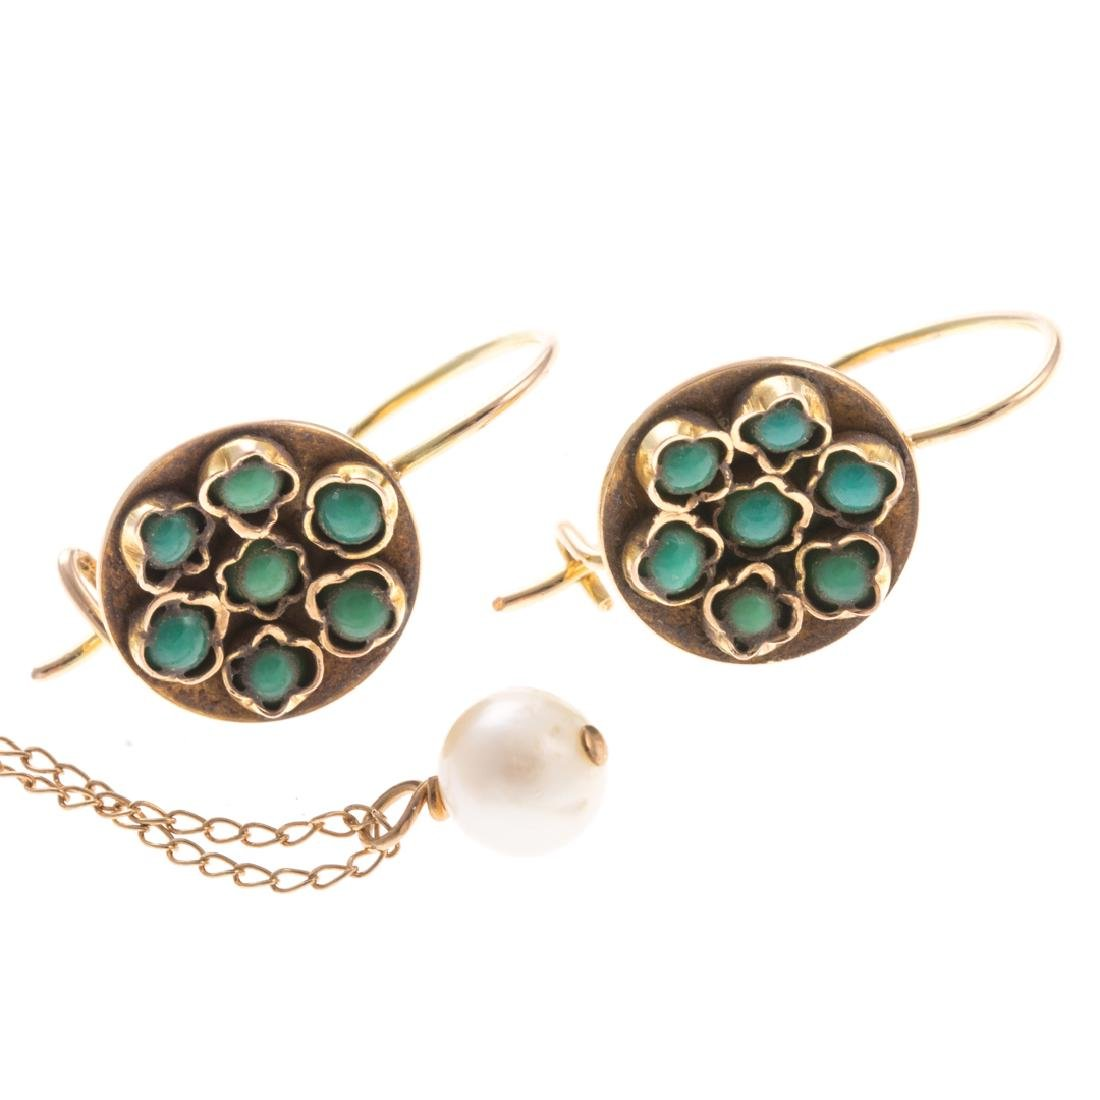 A Pair of Turquoise Earrings & Pearl Pendant